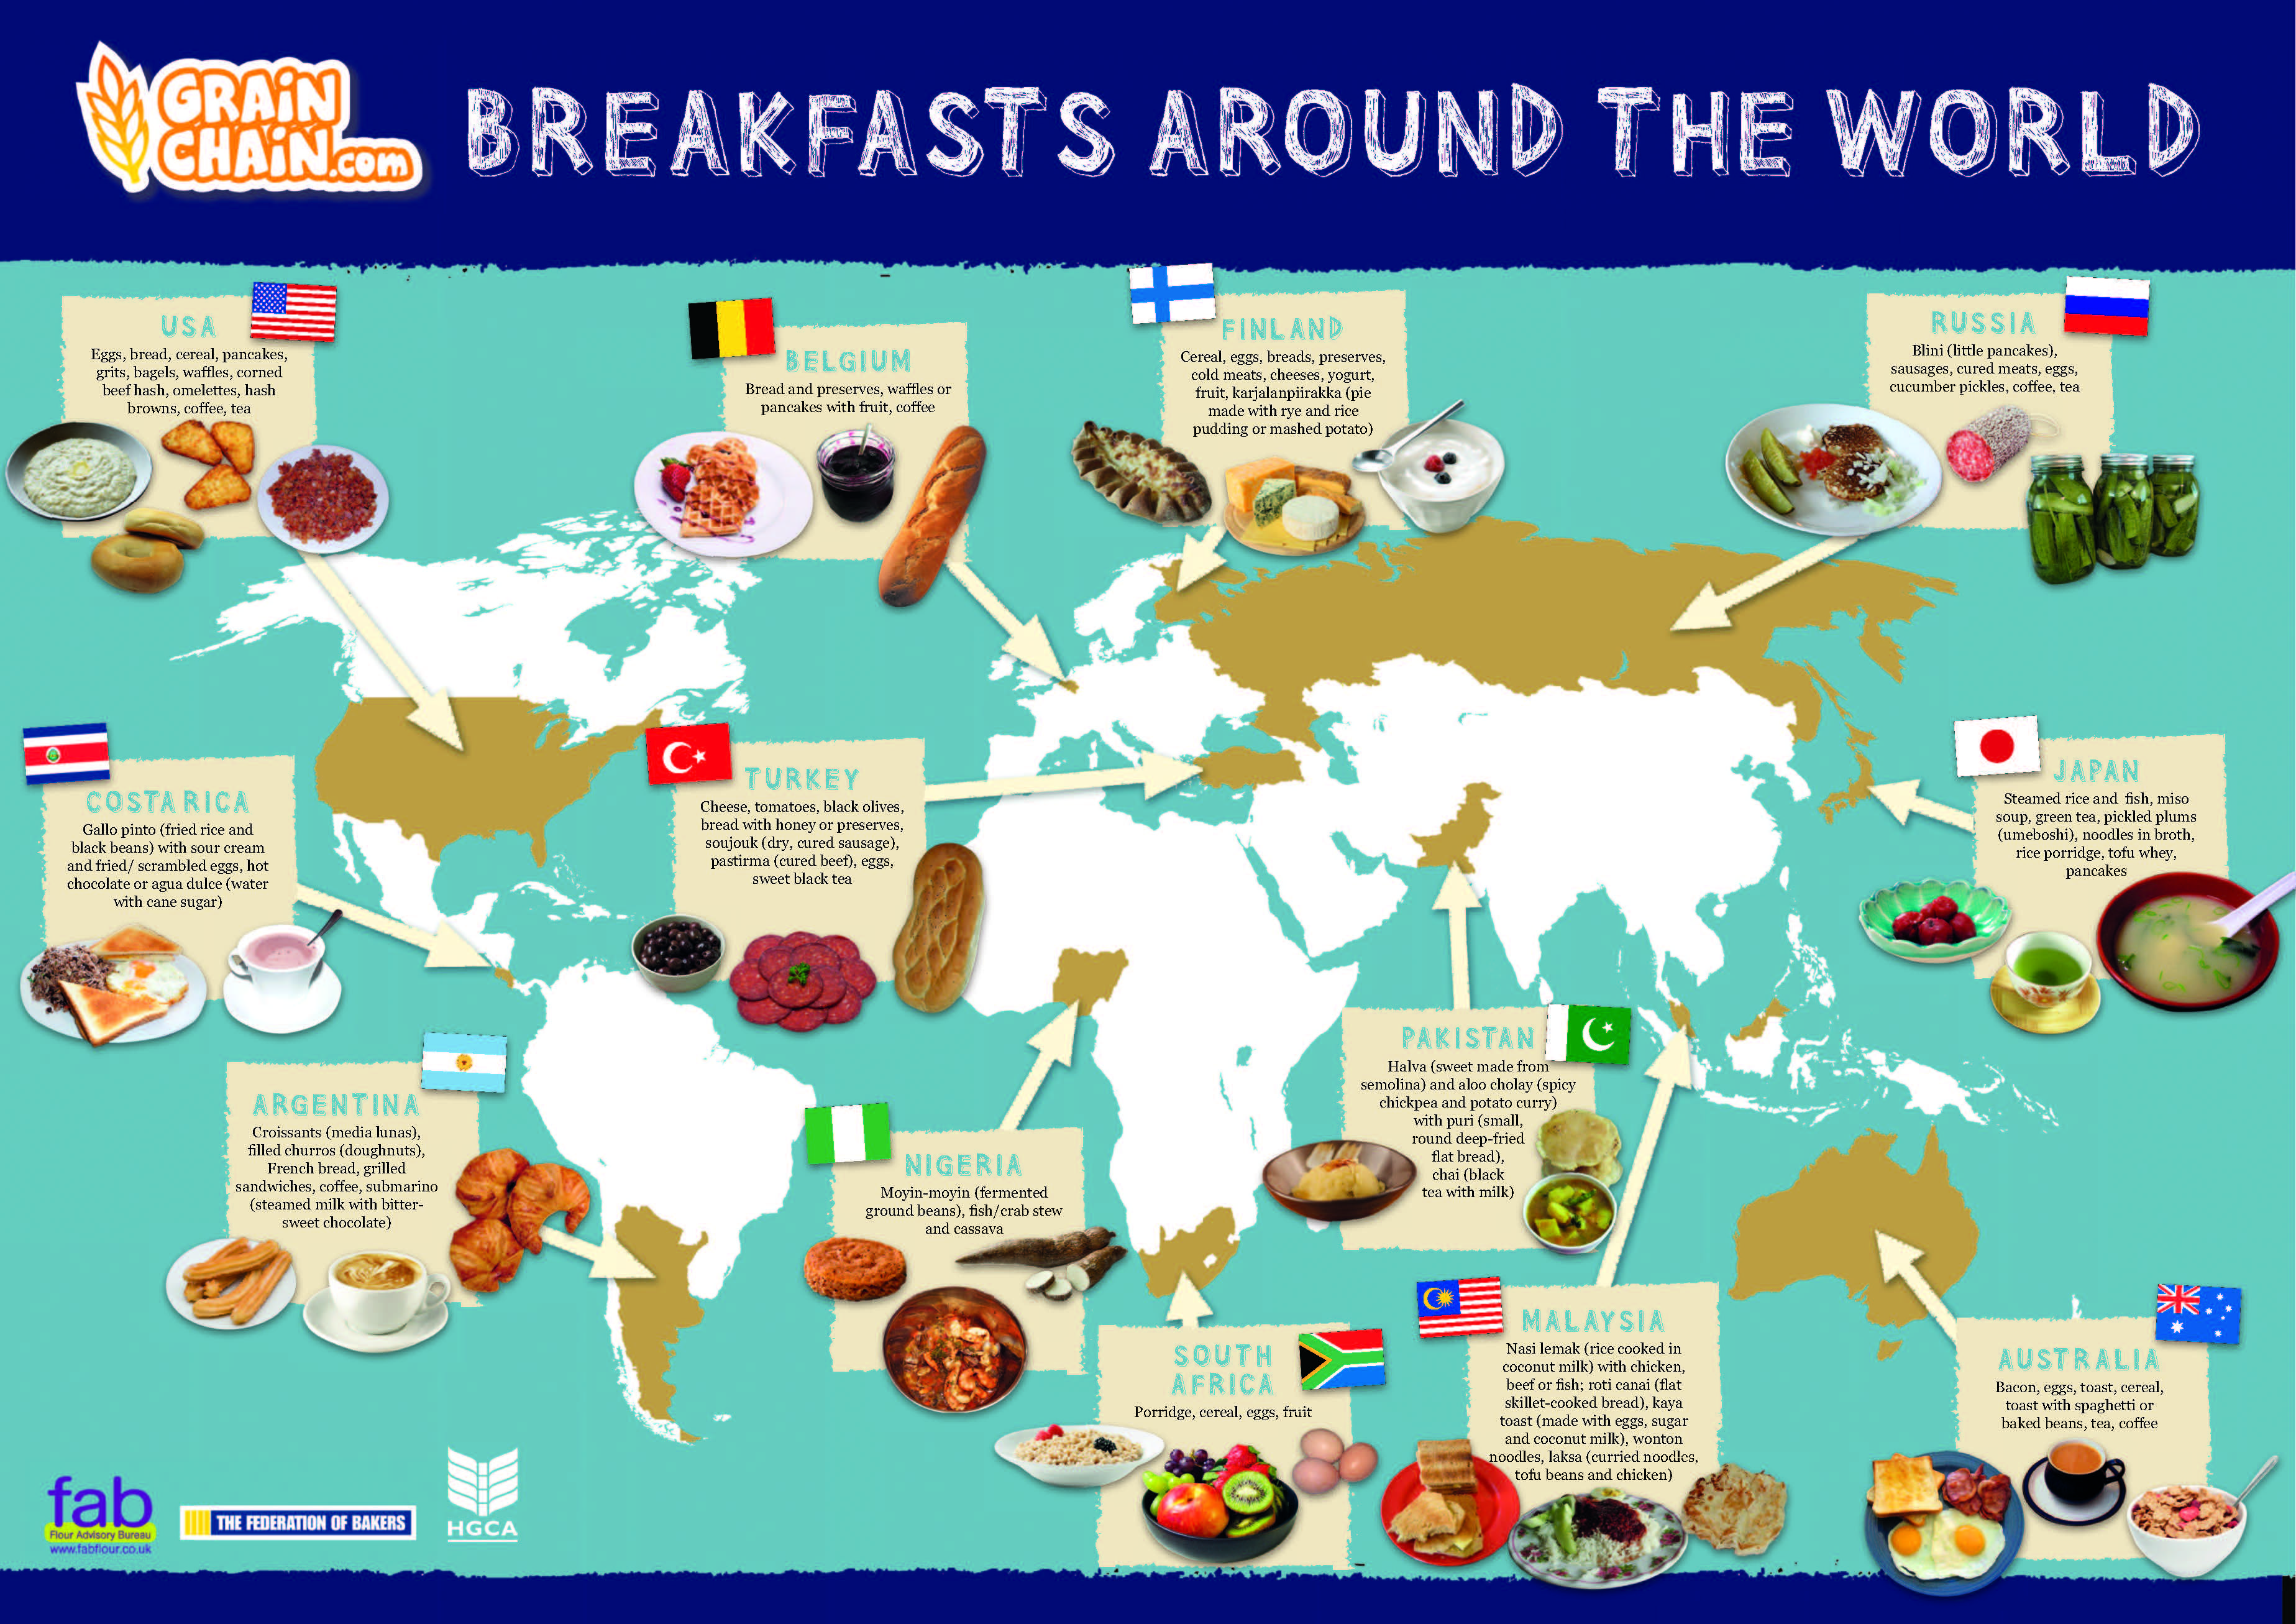 World Map Showing The Types Of Breakfasts Eaten In